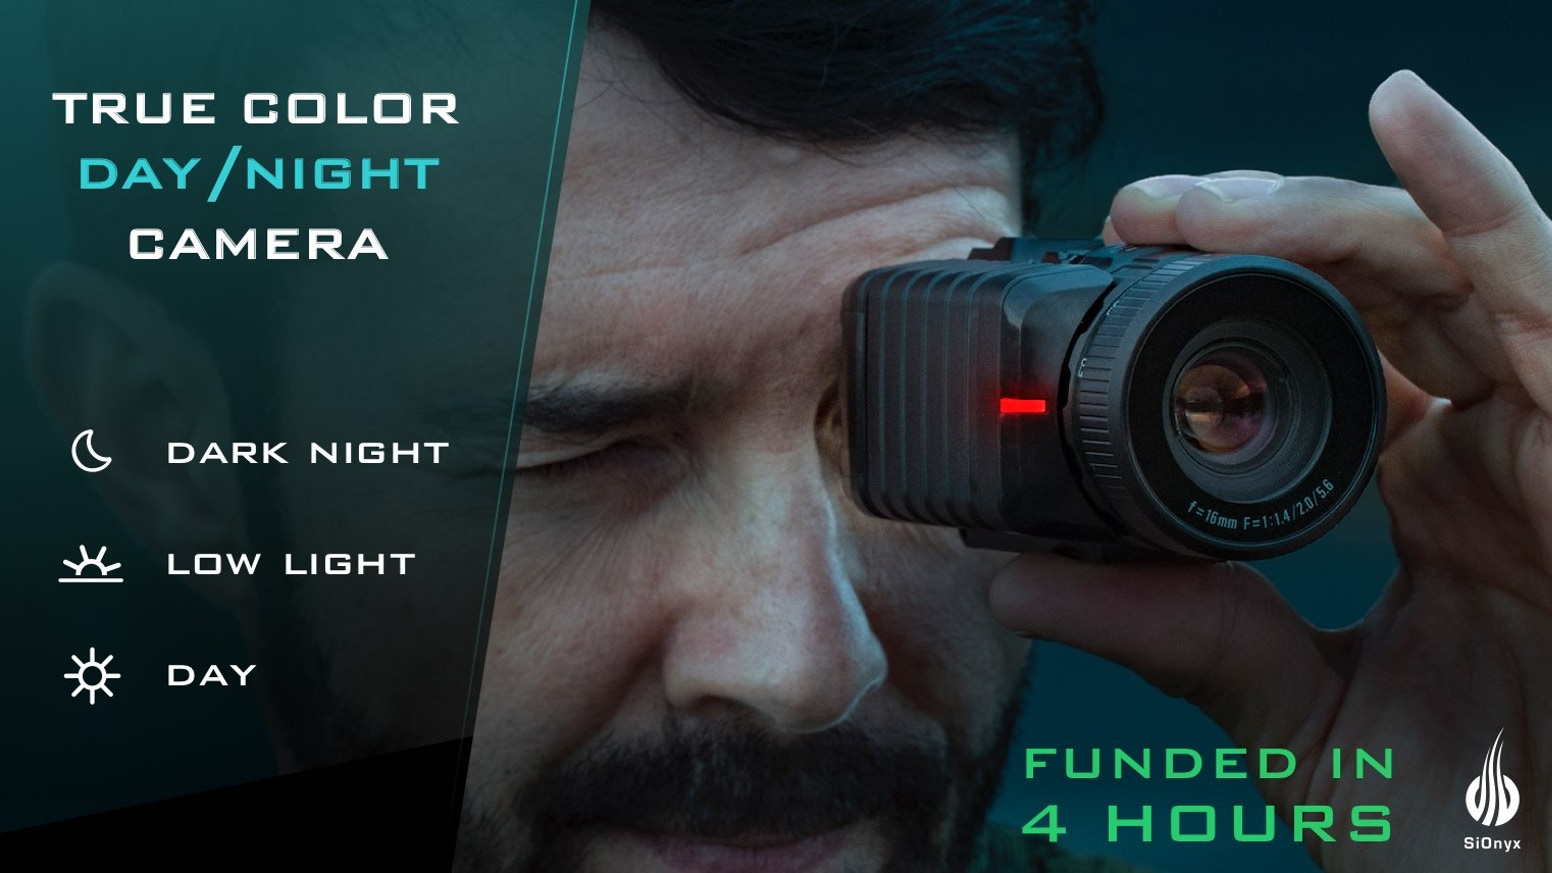 View, record and review life's adventures all day and night. True color night vision enhances your safety, lifestyle and experience.